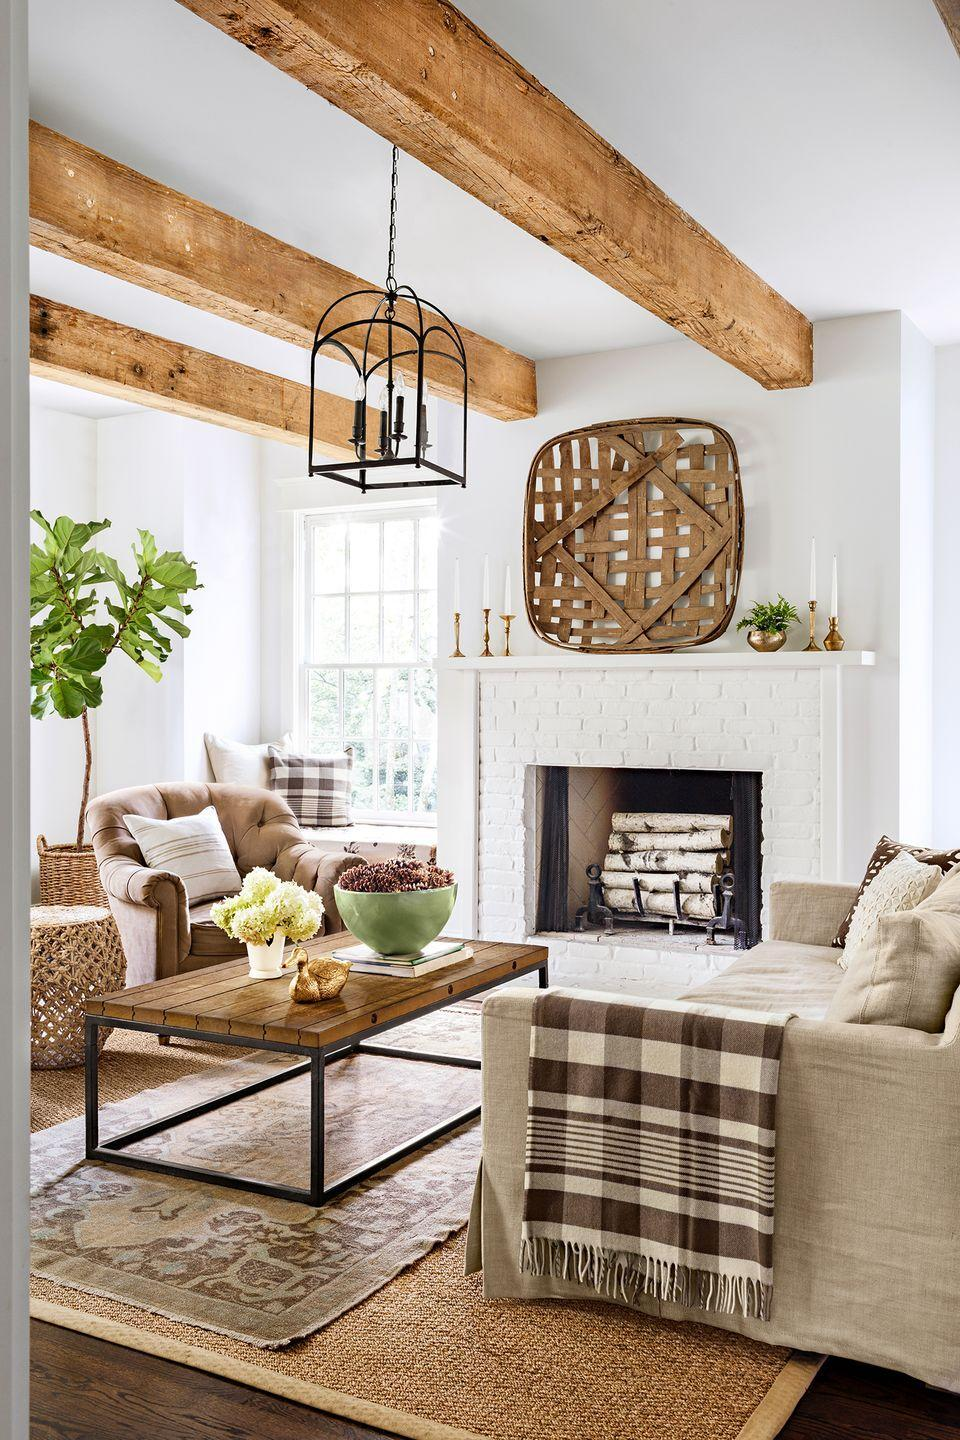 <p>Keep it simple with wooden decorative pieces that add texture to a neutral room.</p>